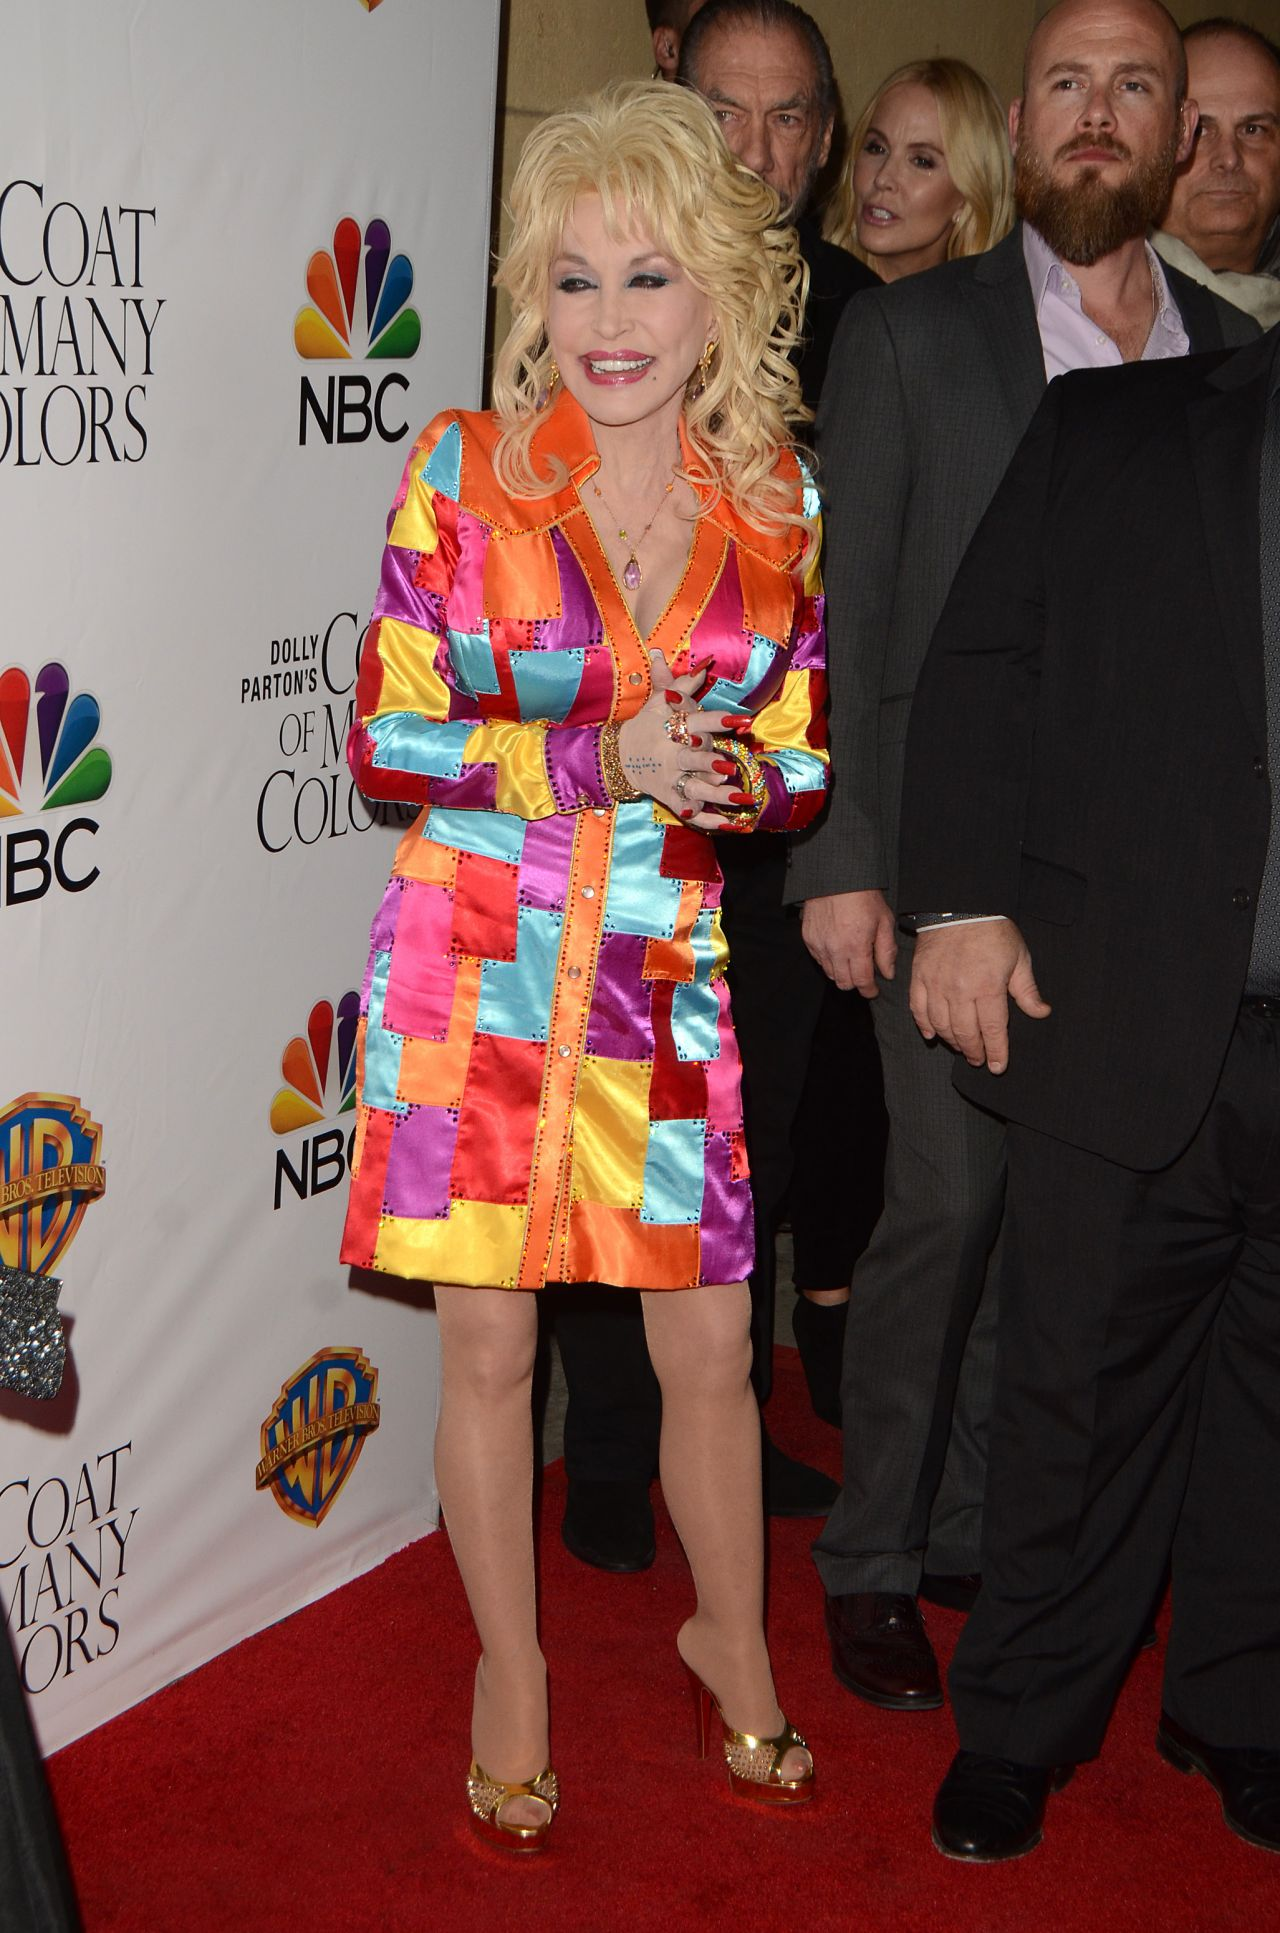 dolly parton coat of many colors screening in los angeles - Dolly Parton Coat Of Many Colors Book